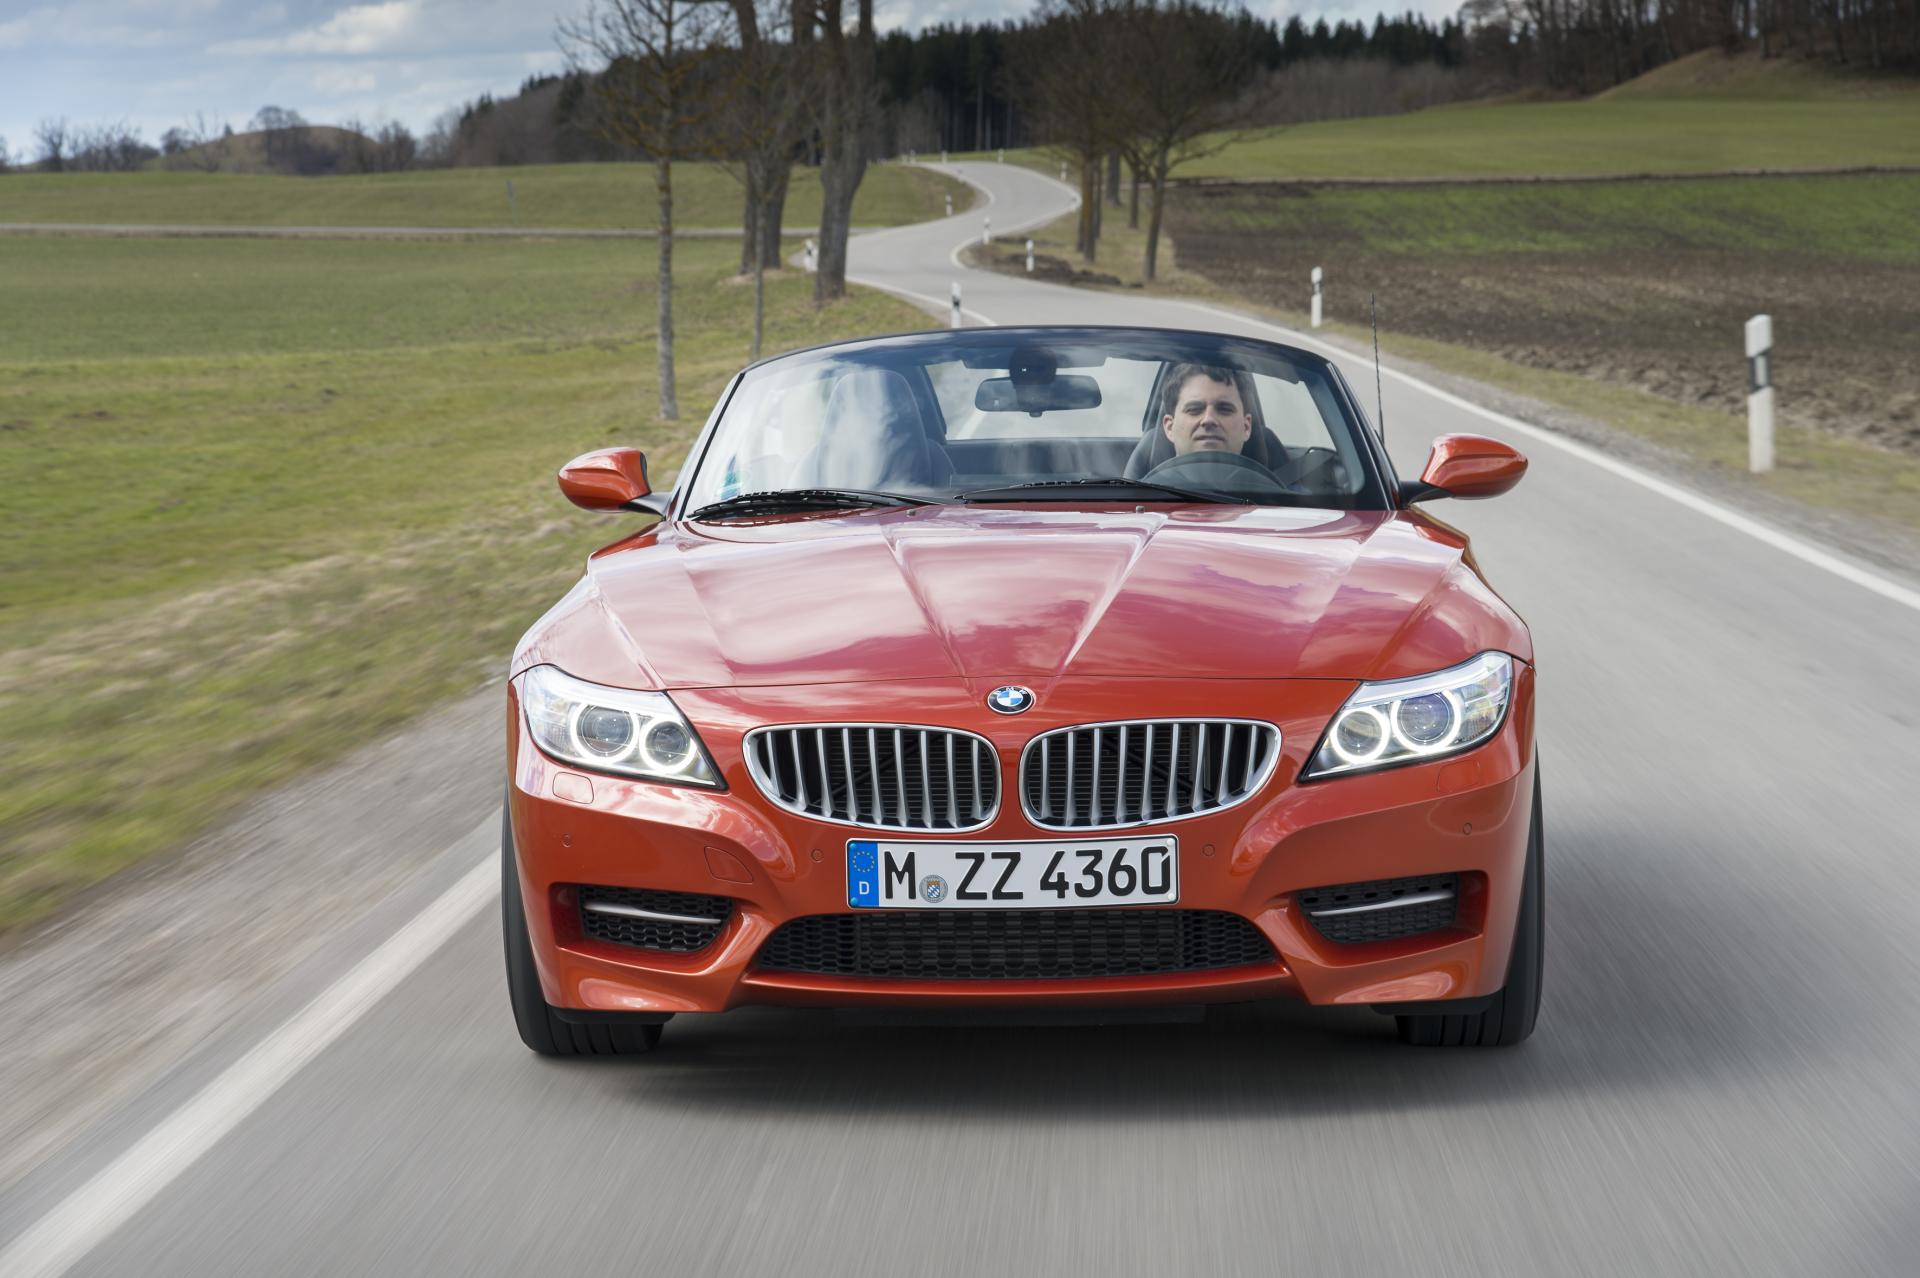 2014 Bmw Z4 News And Information Conceptcarz Com